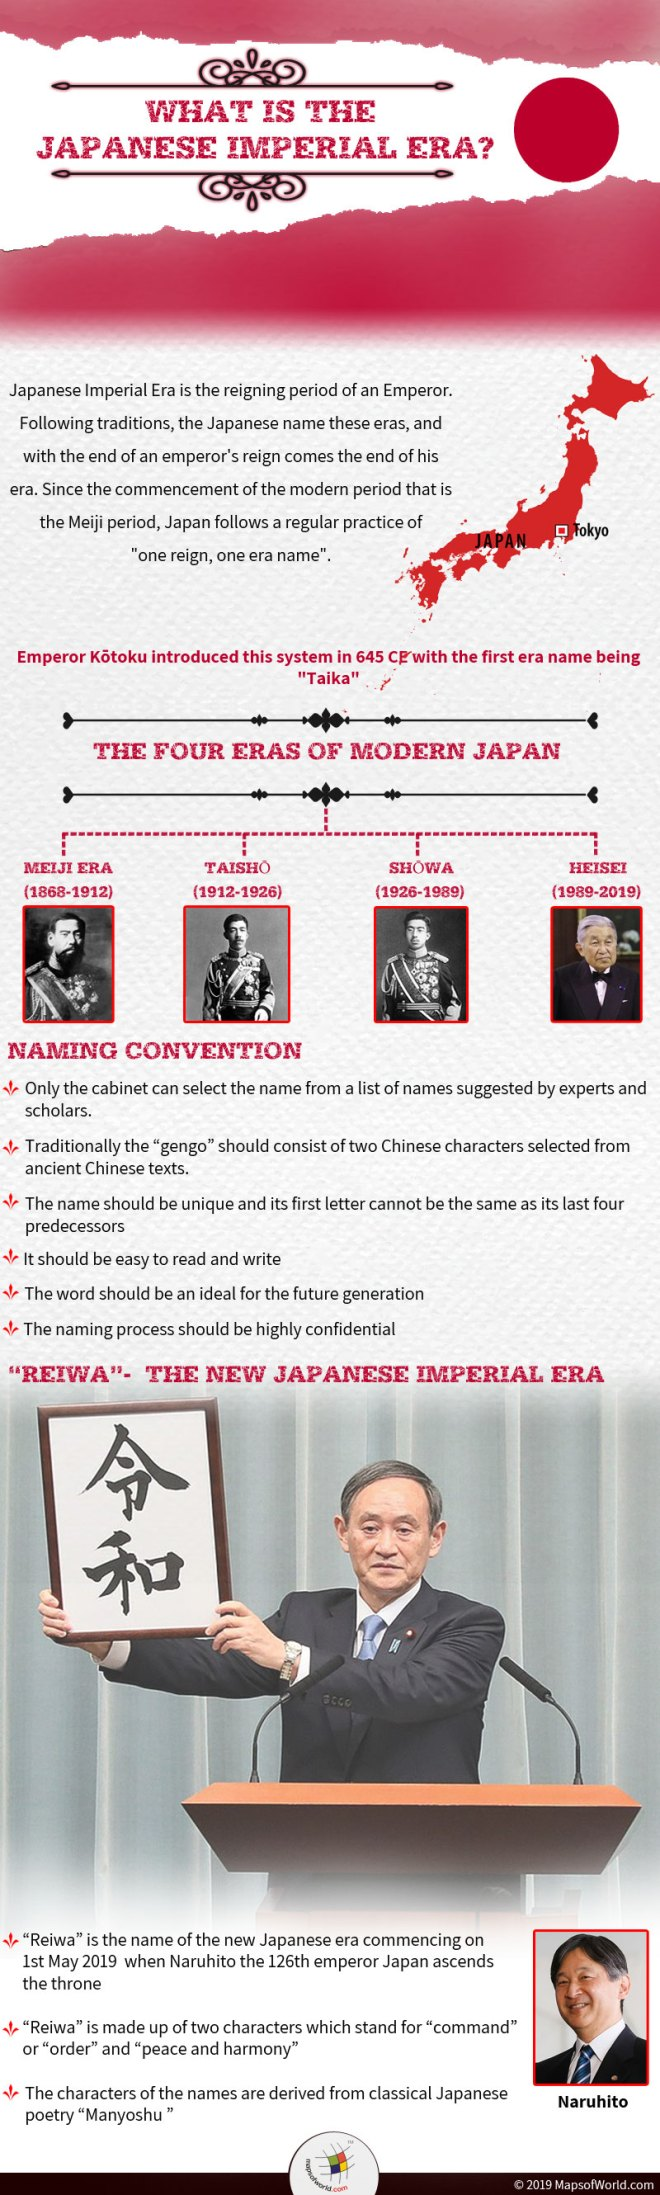 Japanese Imperial Era - The Reigning Period of an Emperor